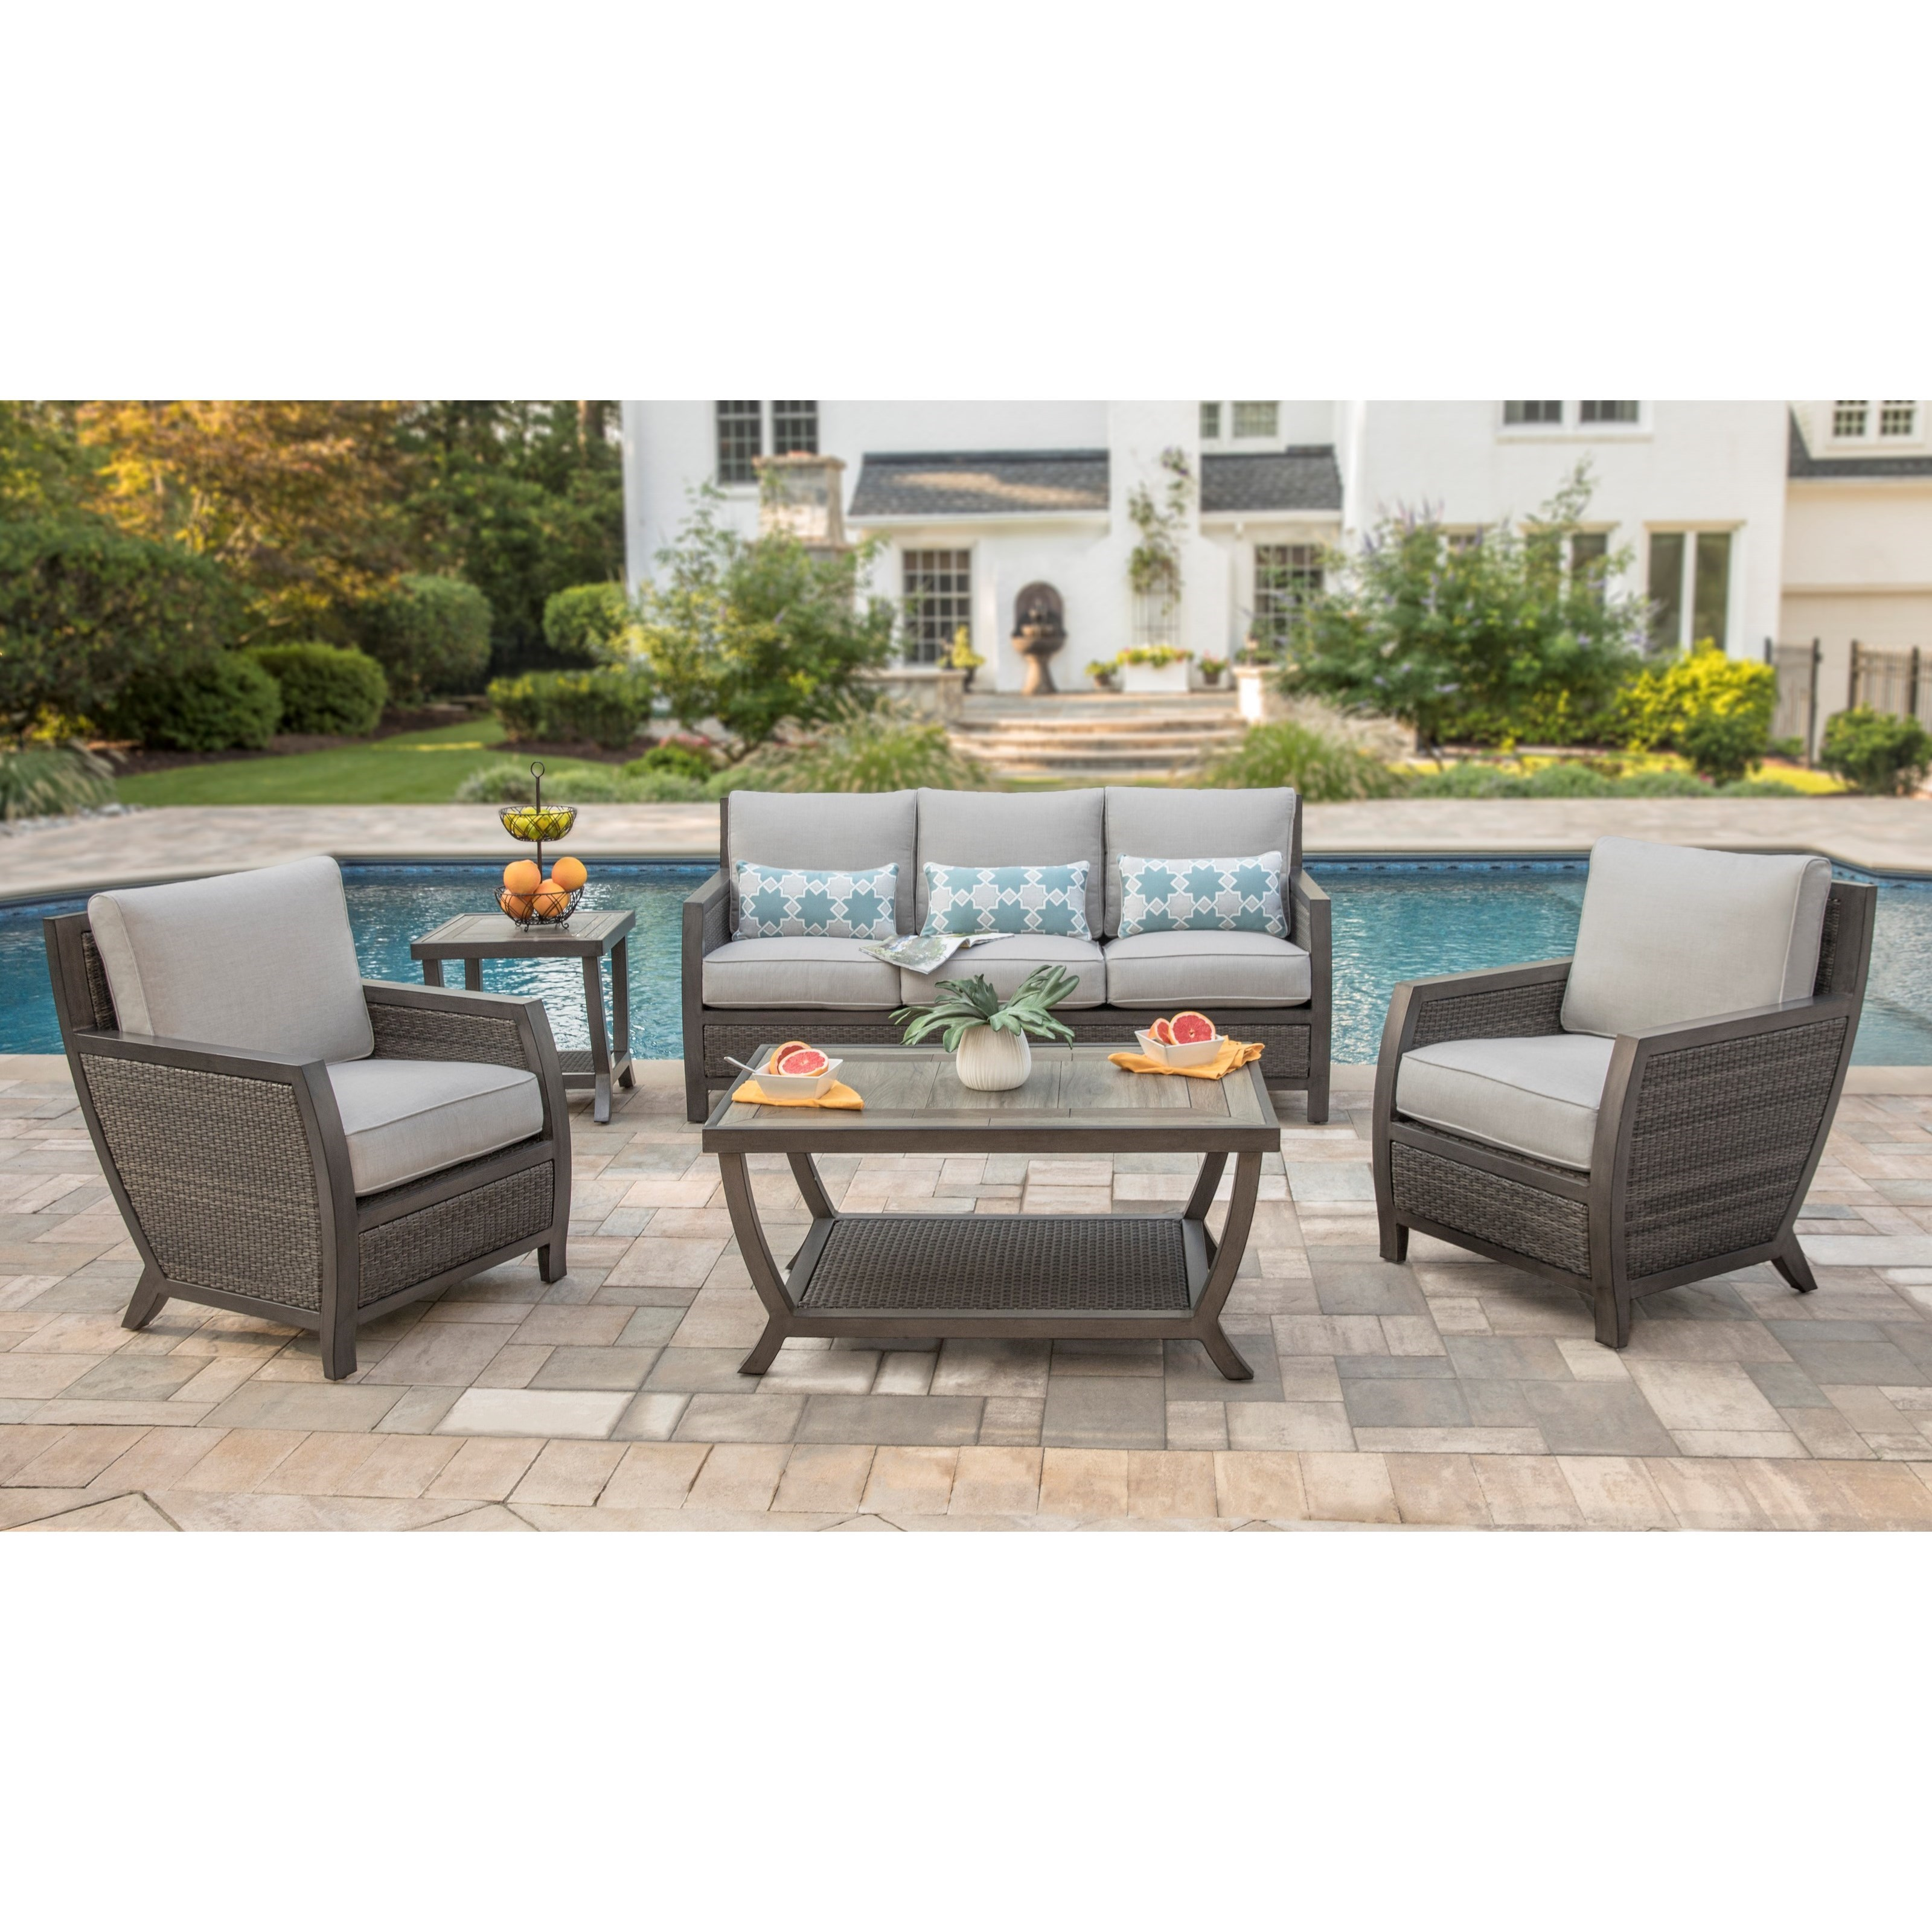 Alfresco Sunstone Contemporary Conversation Set